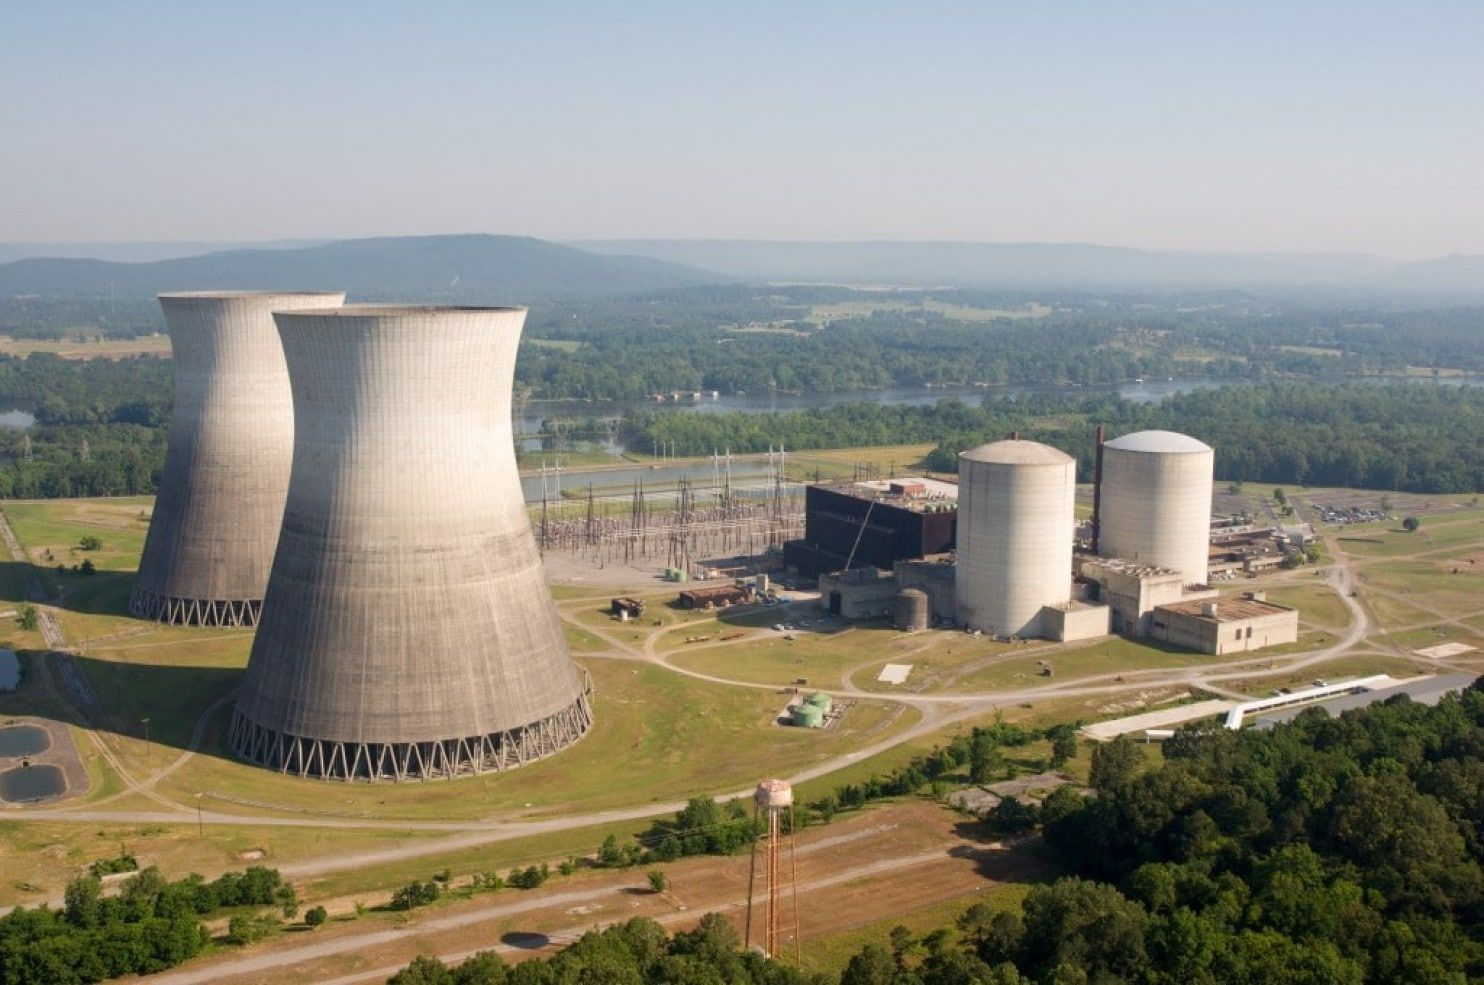 For Sale Multibillion Dollar Non Working Nuclear Power Plant As Is